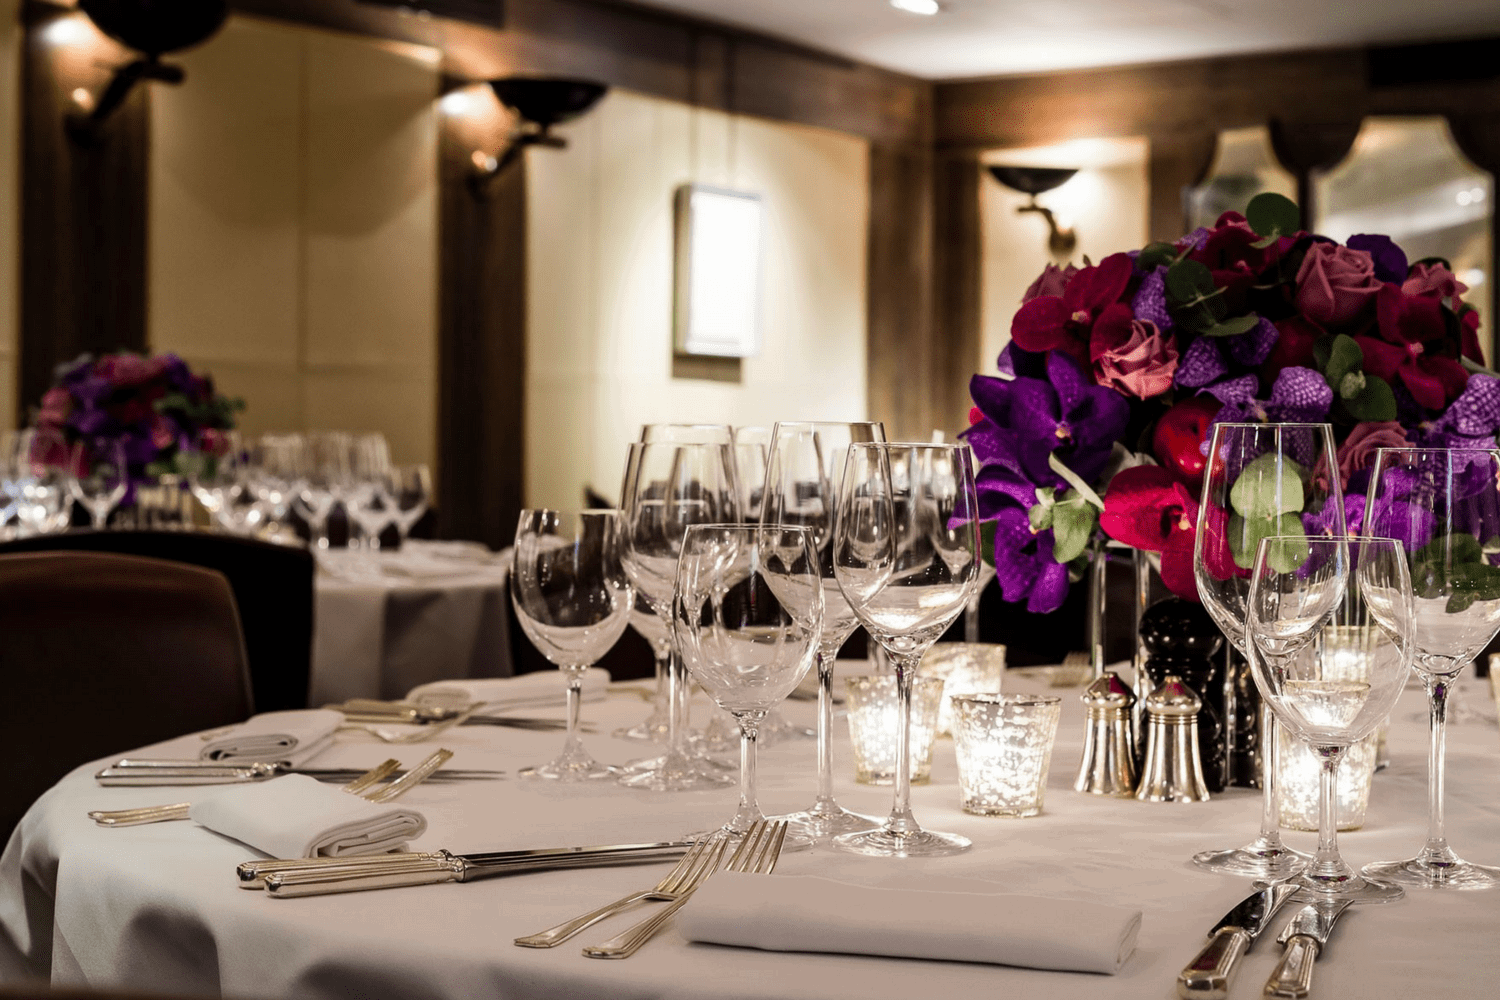 The Private Room at Scott's in Mayfair, Ideal for Group Dining or Corporate Dinners